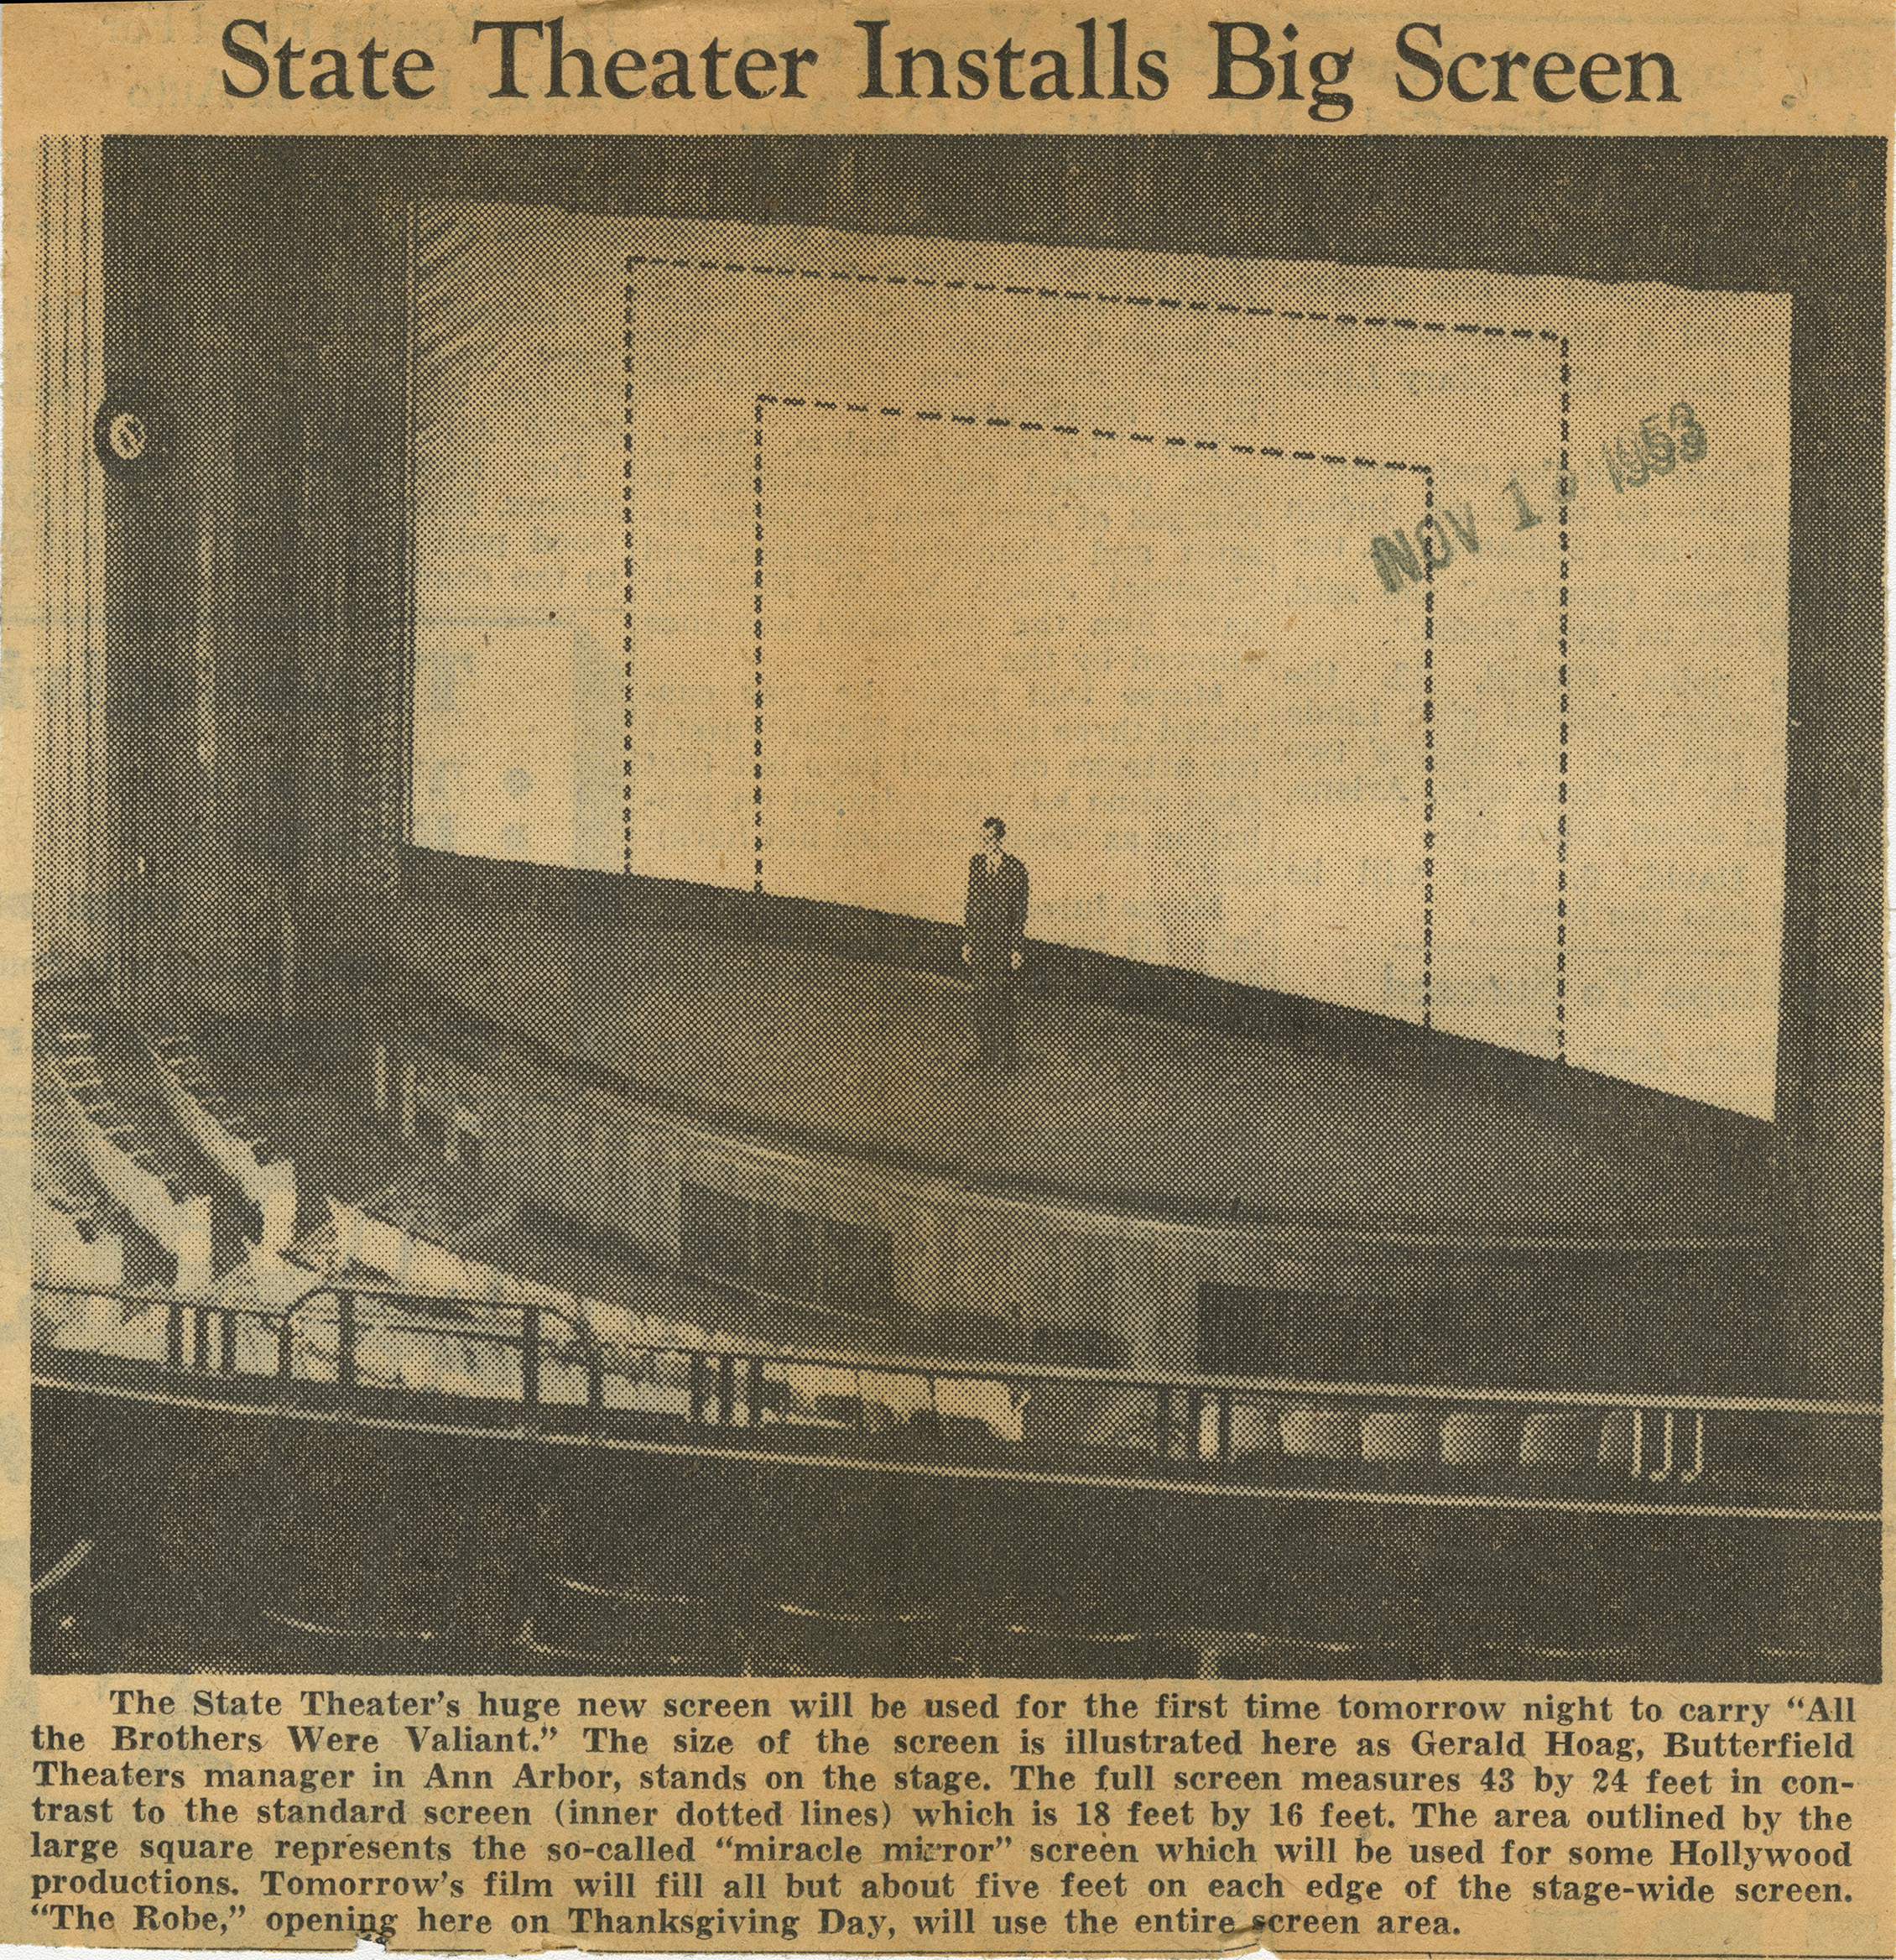 State Theater Installs Big Screen image